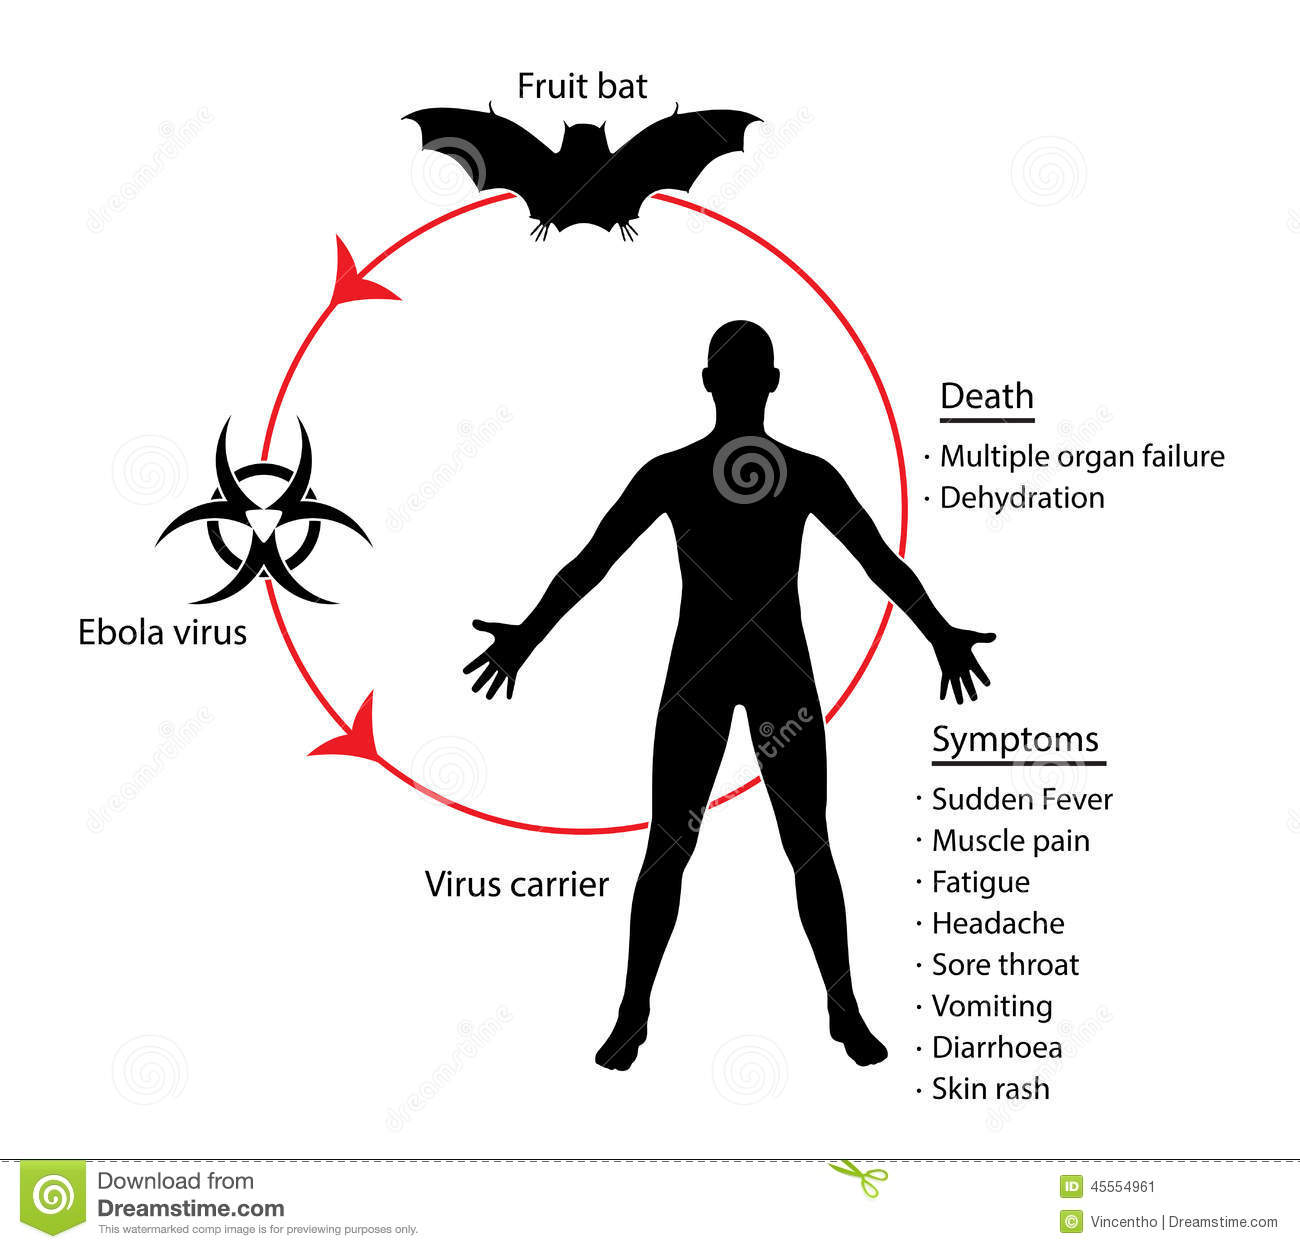 Ebola Basics Diagram Education Knowledge Illustration